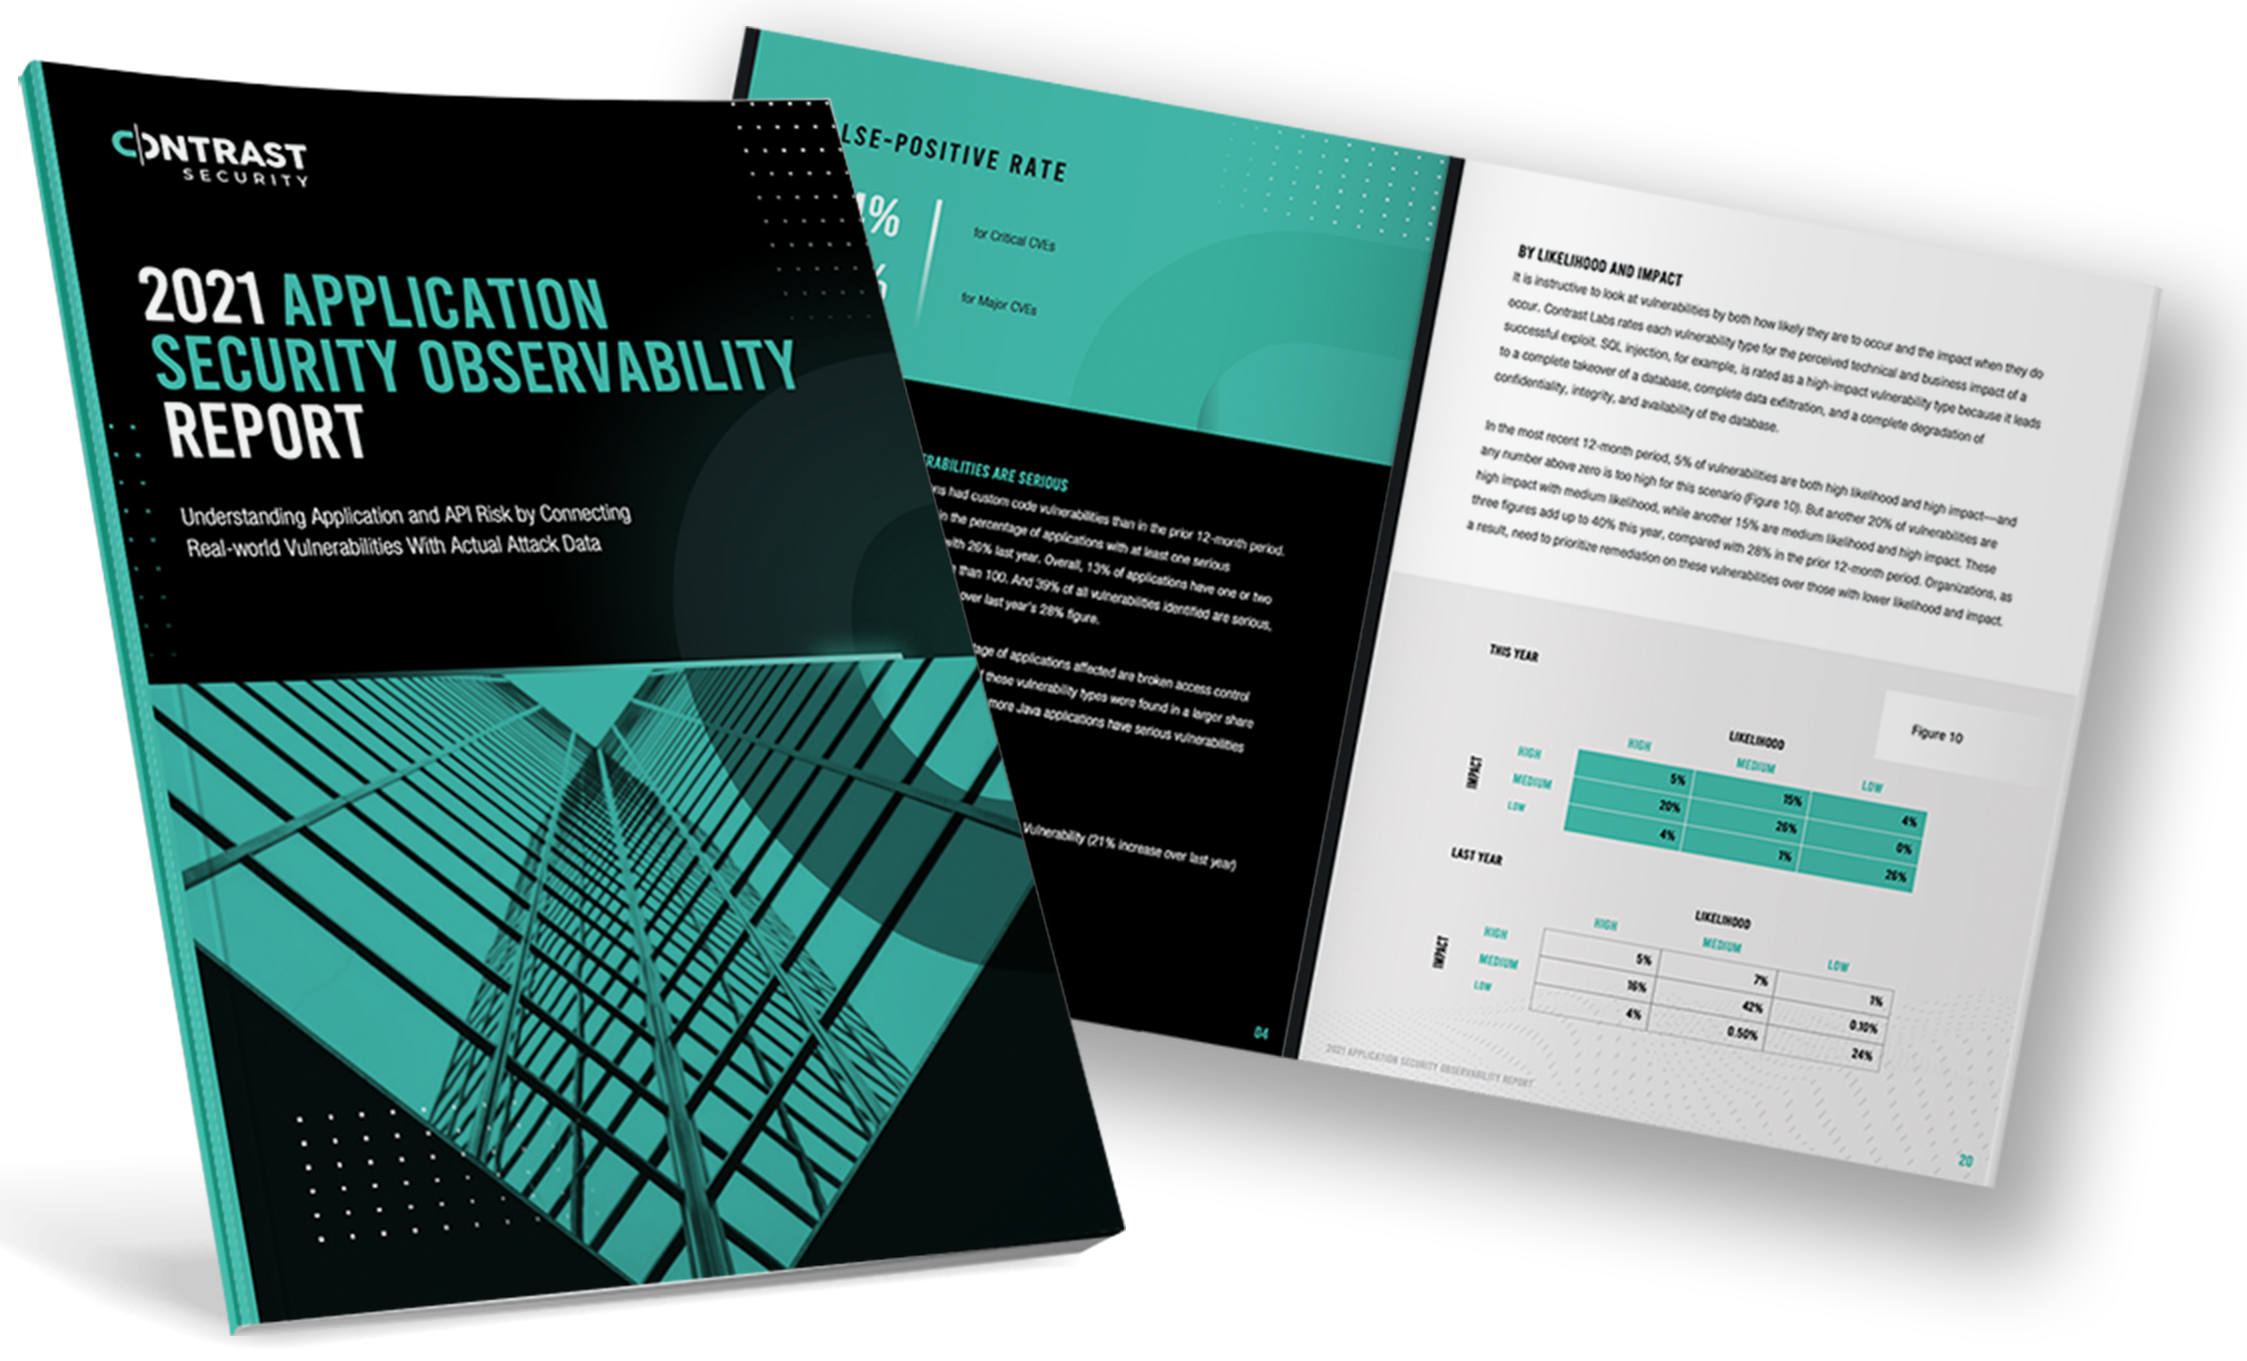 2021-application-security-observability-report-sm@2x-1